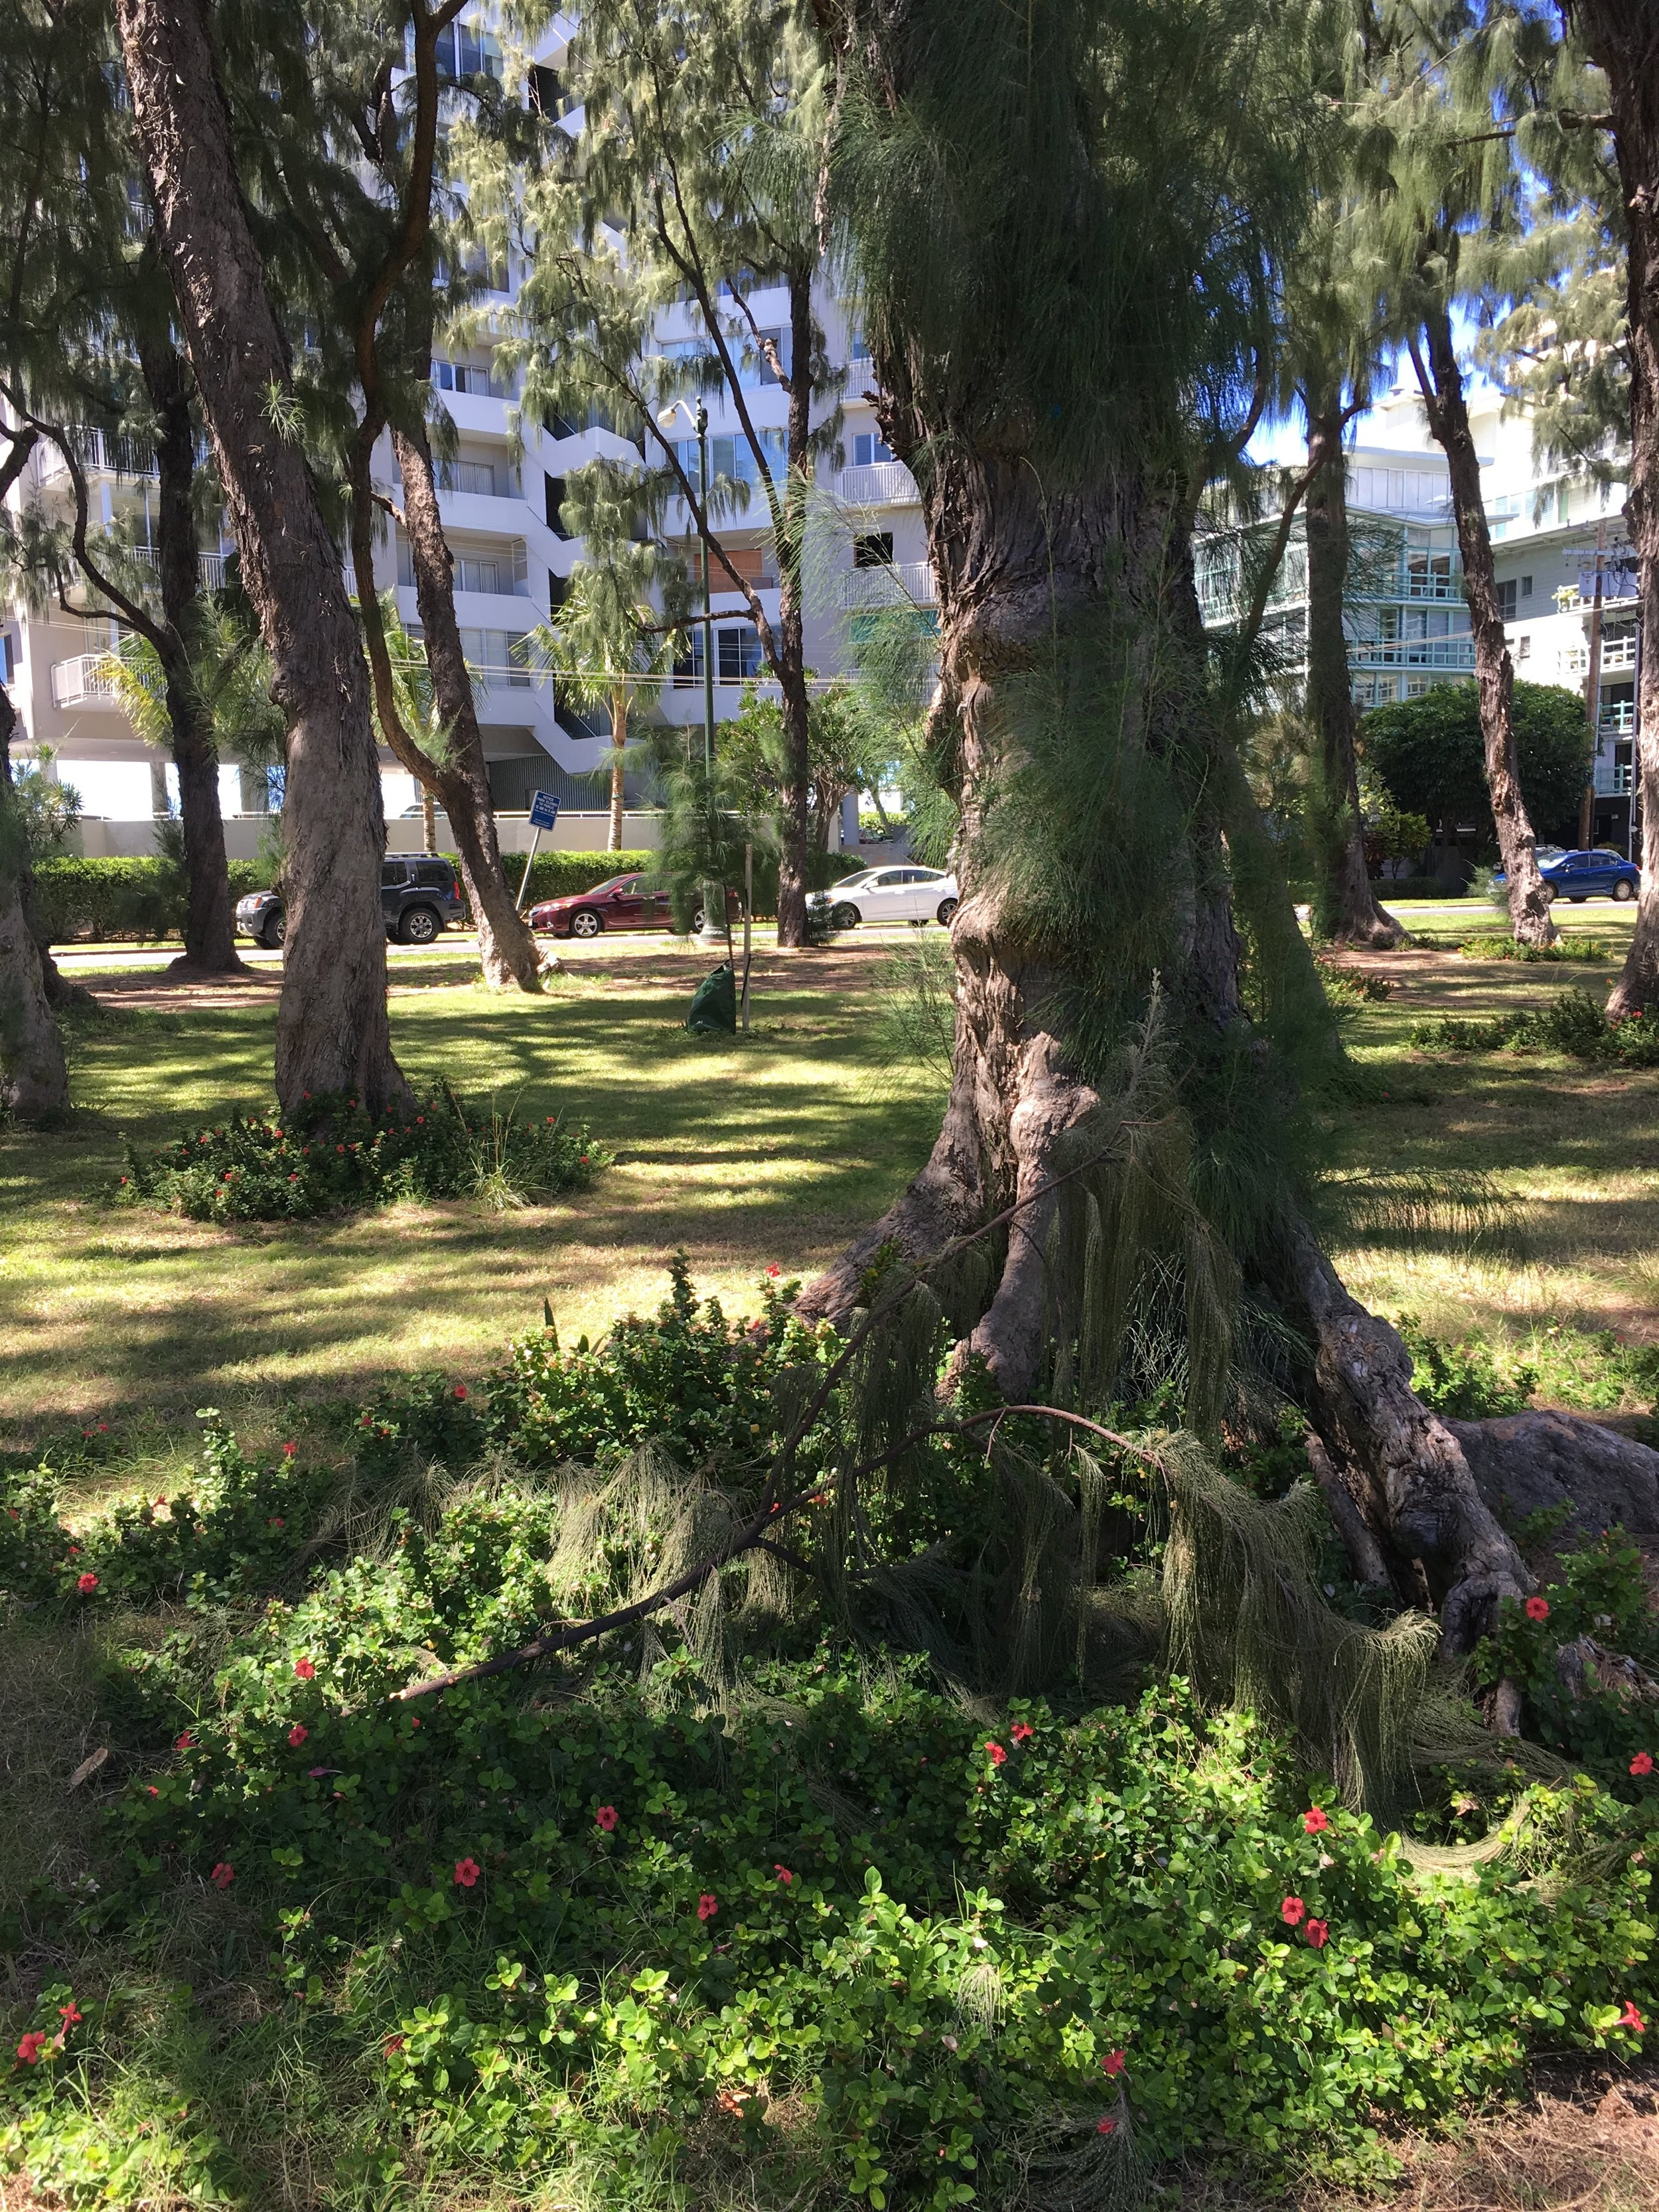 """The magical grove of fern trees at Kapiolani Park near Kalakaua Avenue and the """"Gold Coast"""" in Honolulu - I would've missed out on noticing this special place had I been in a rush, in my head, looking at my phone, or any other action that wasn't """"being in the now.""""  (Photo taken March 2018) ."""